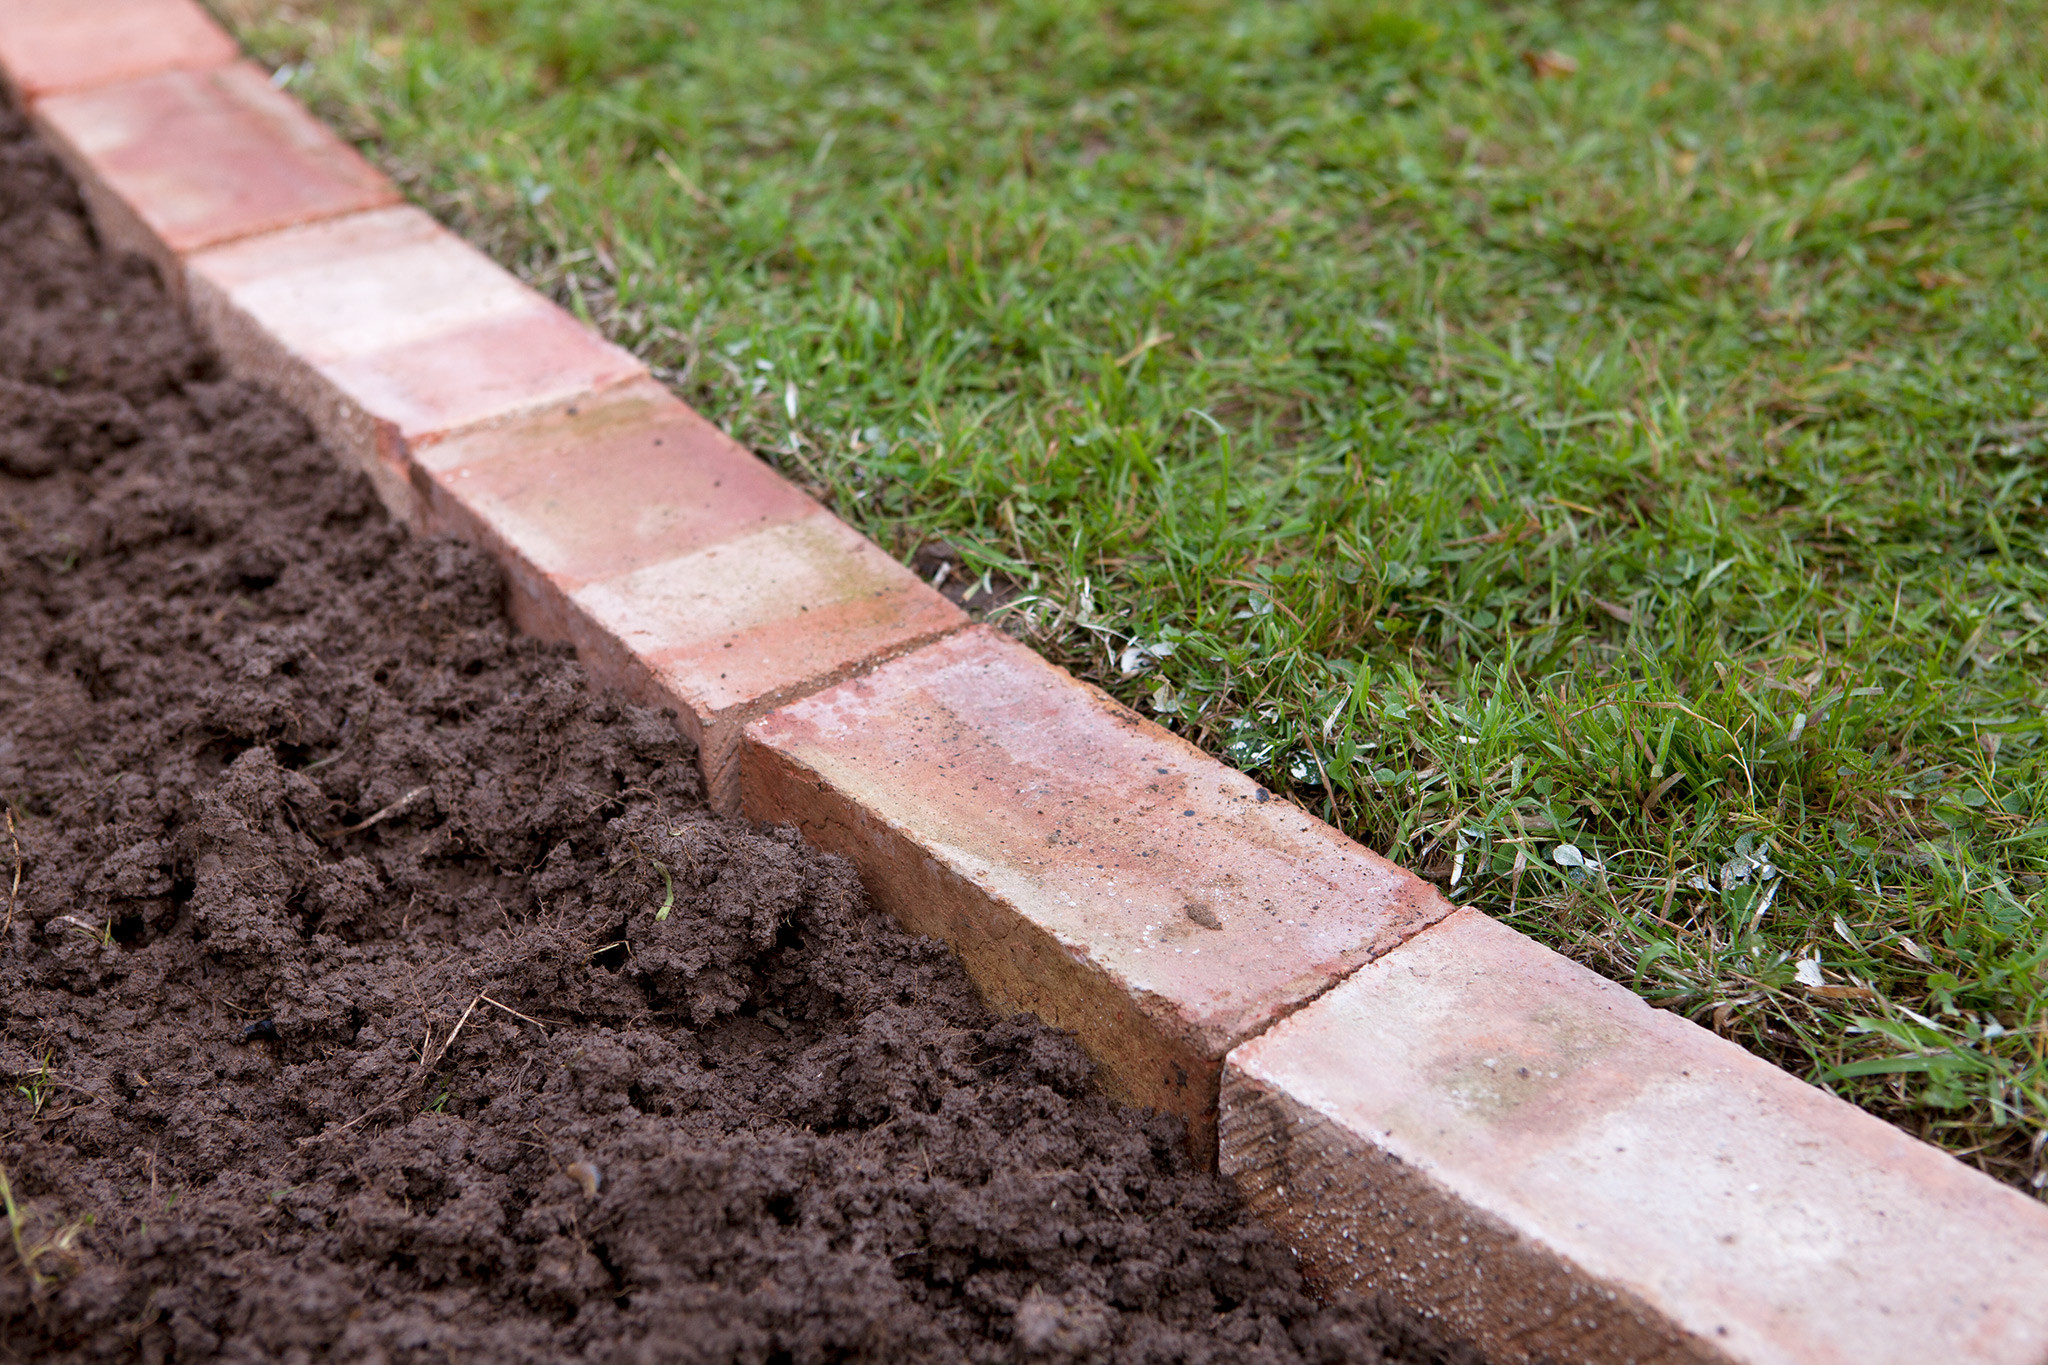 Brick Landscape Edging  Edge a lawn with bricks project gardenersworld